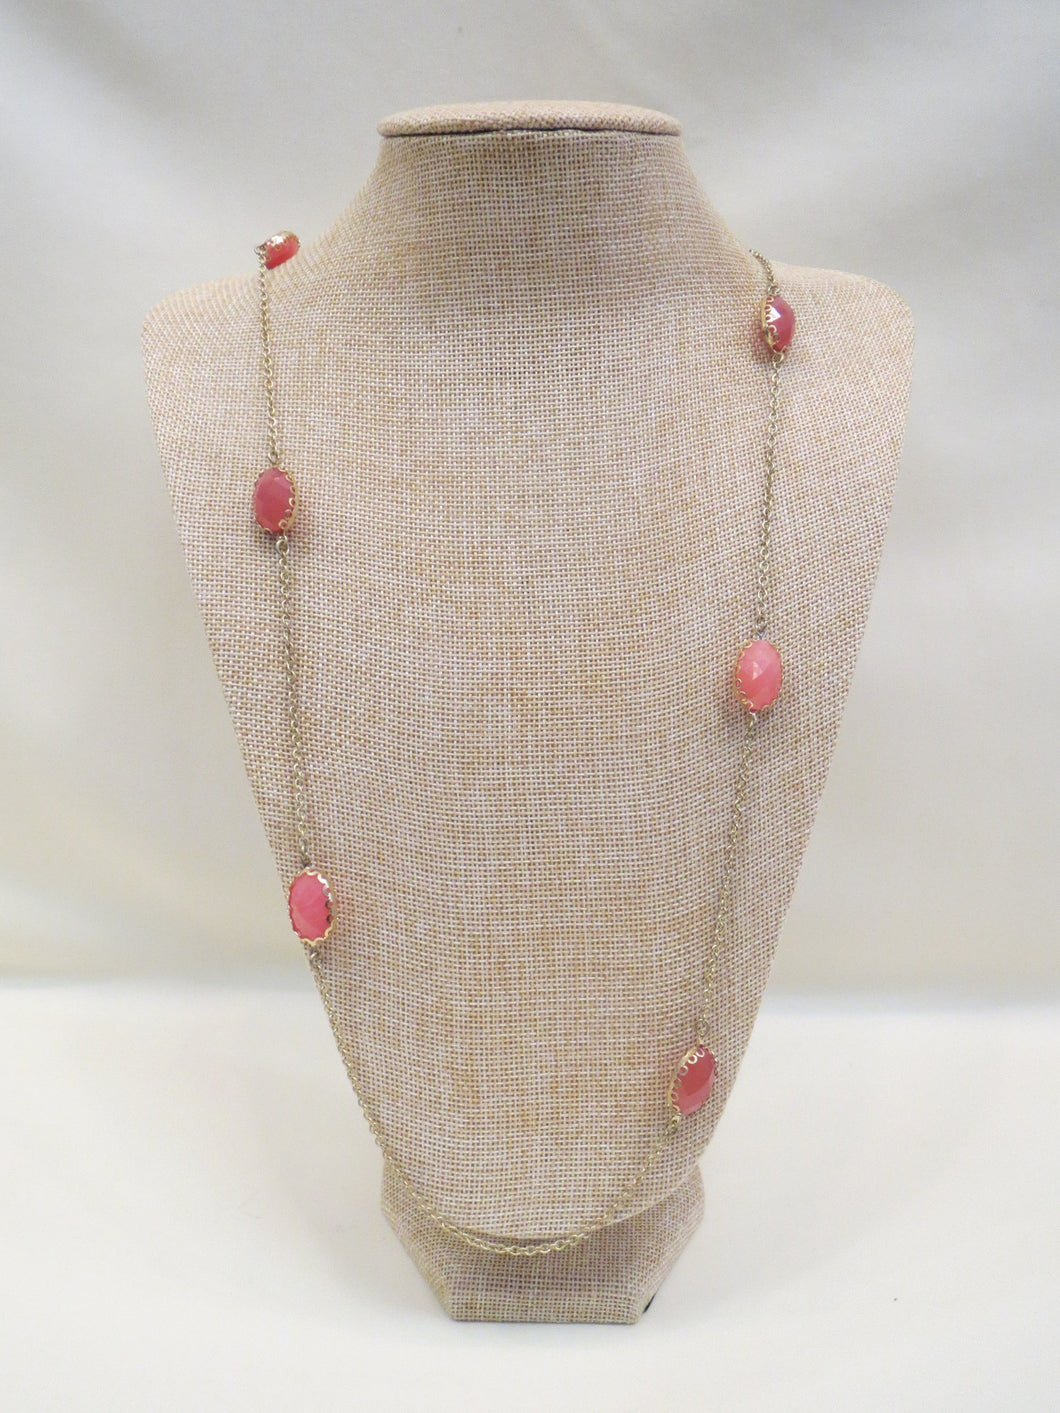 ADO | Coral & Gold Gem Stone Necklace - All Decd Out